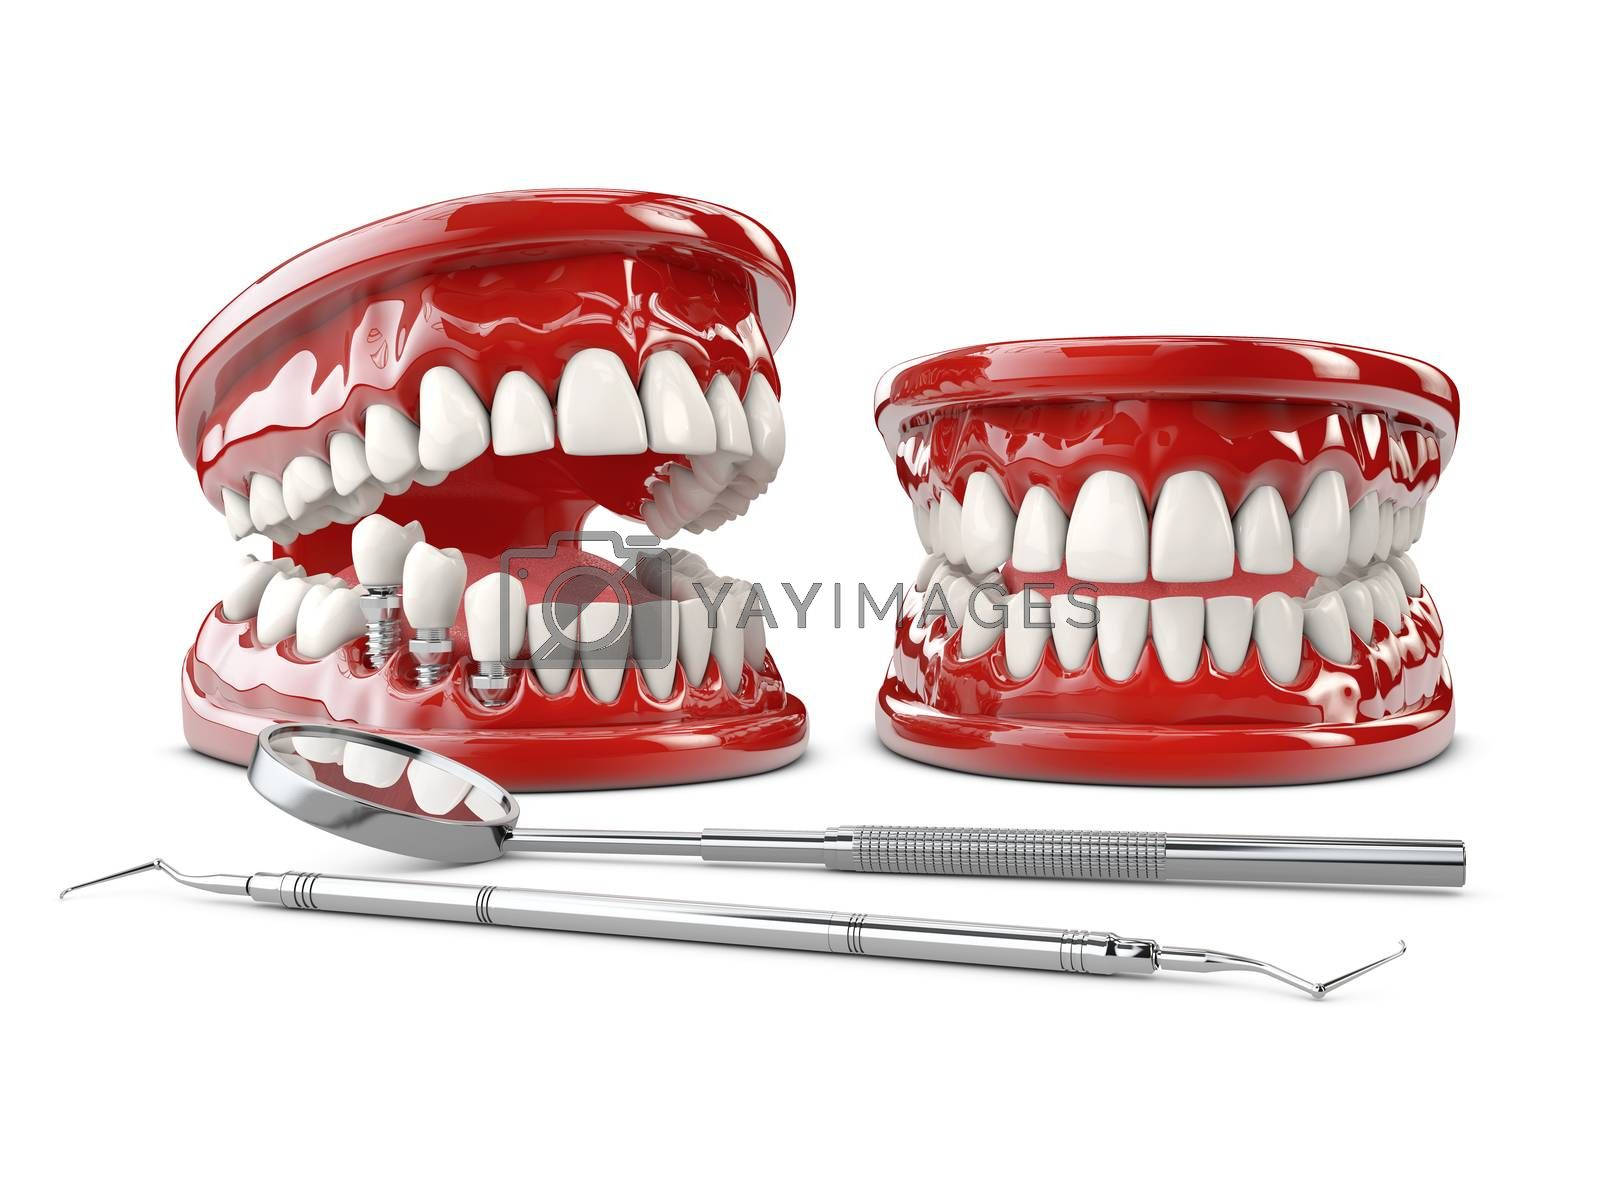 Tooth human implant. Dental concept 3d illustration.